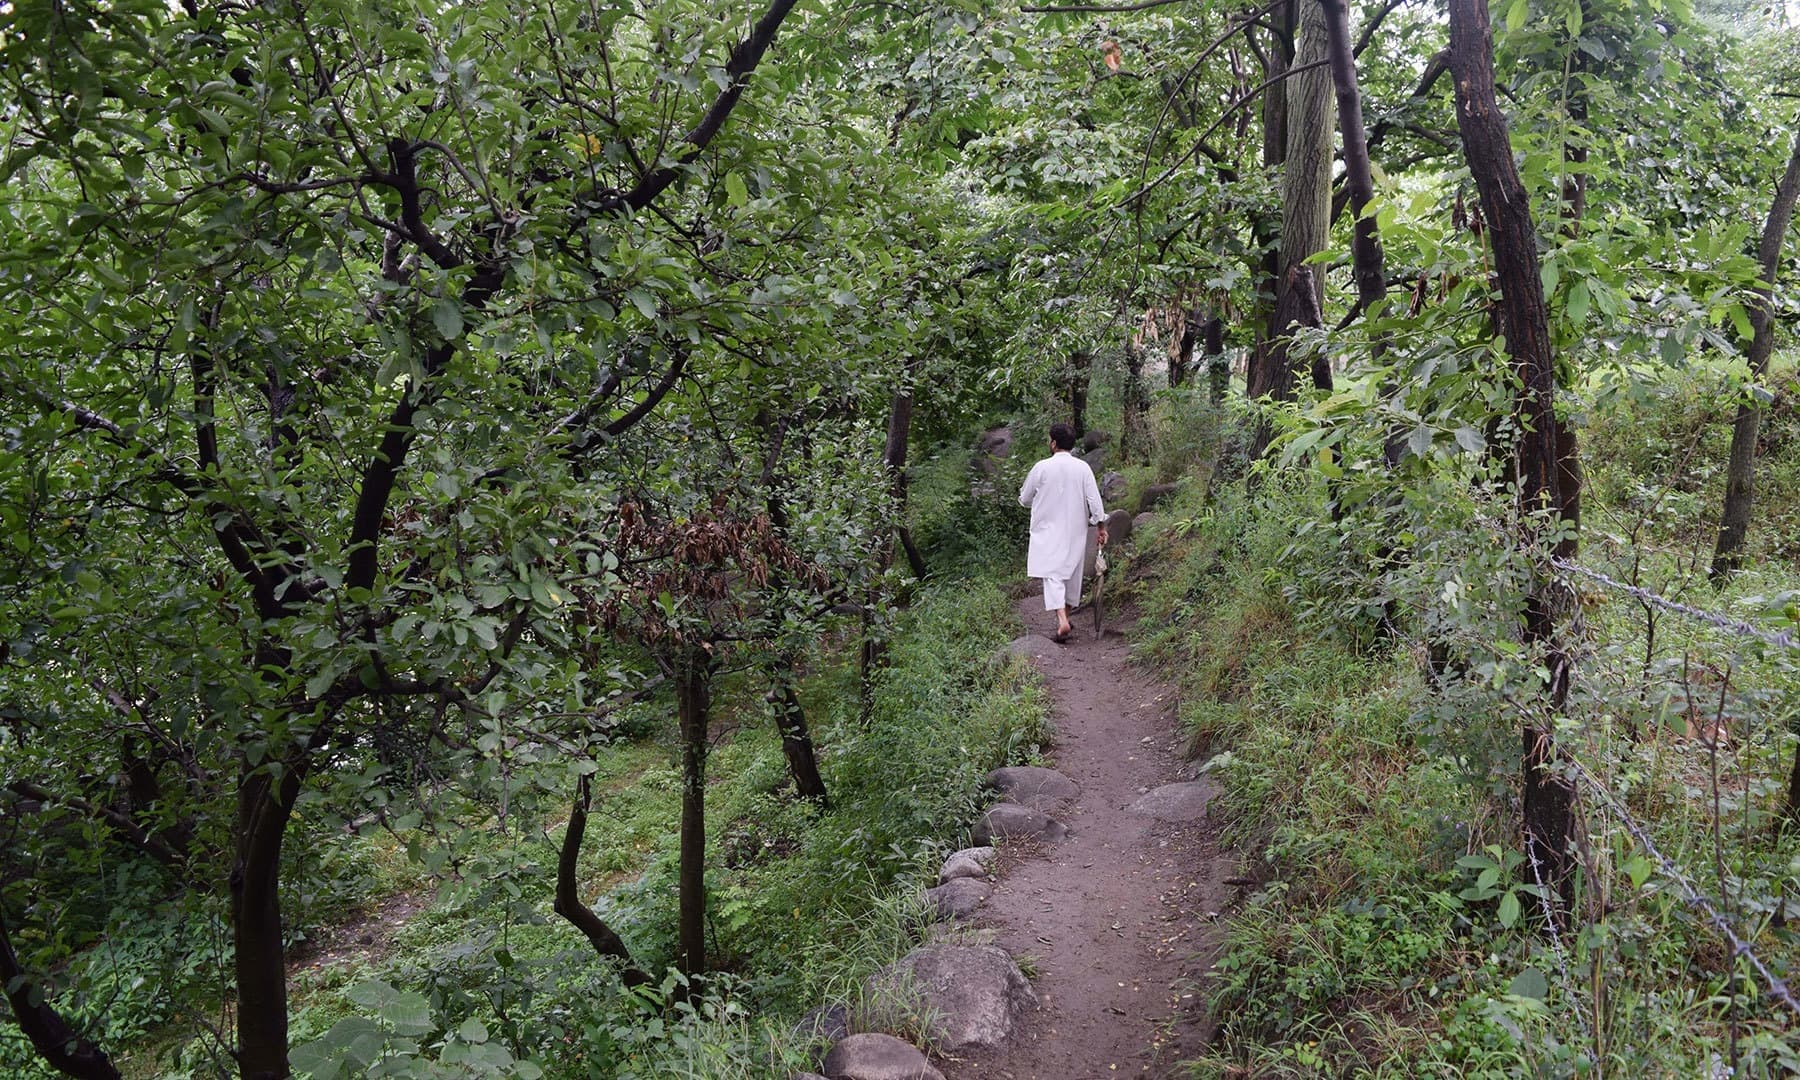 A path between apple orchards leading to river.